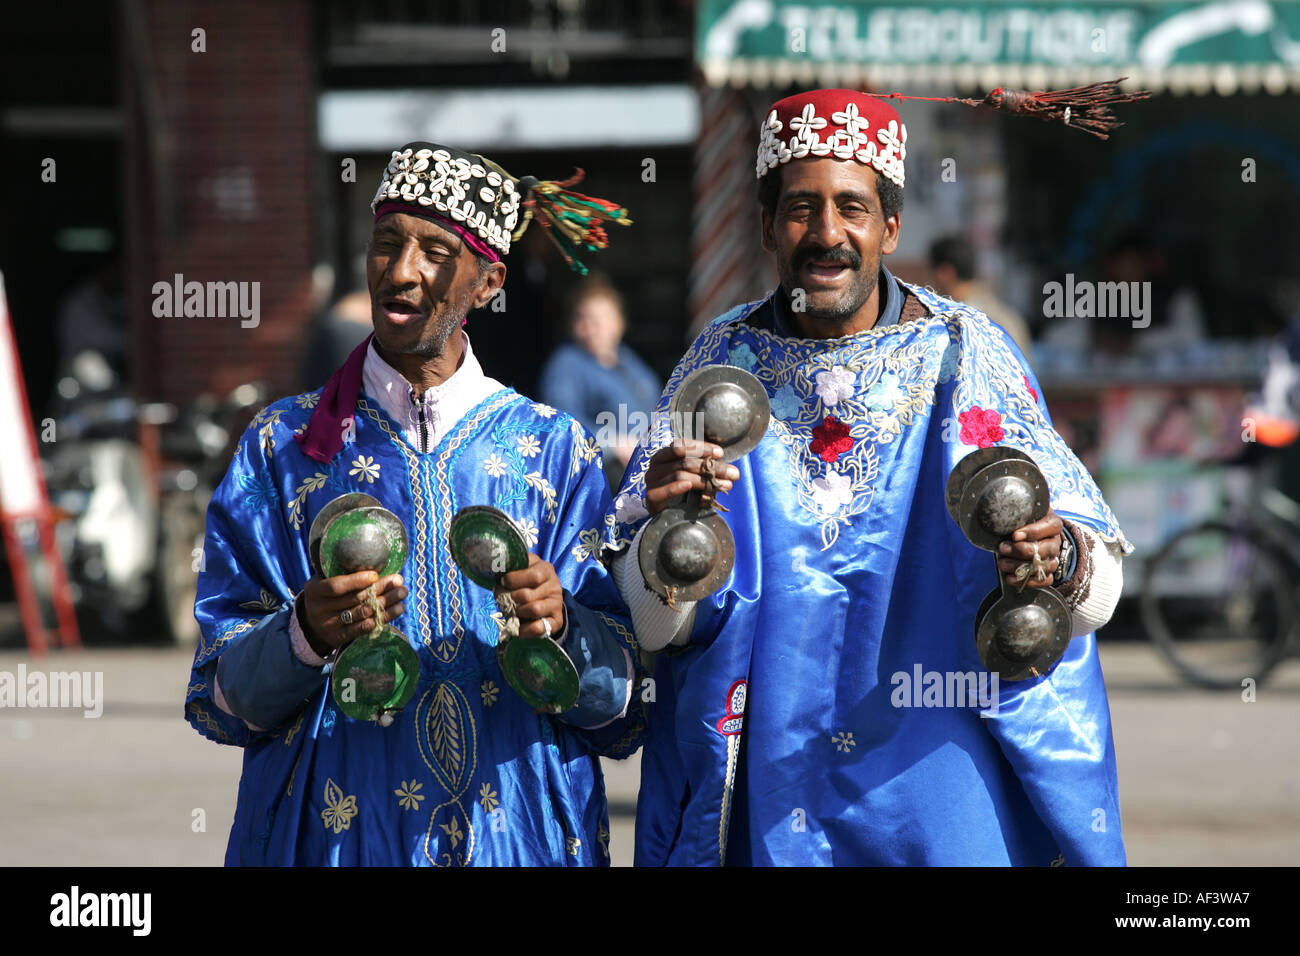 men in traditional dress in Marrakech s main square Stock Photo